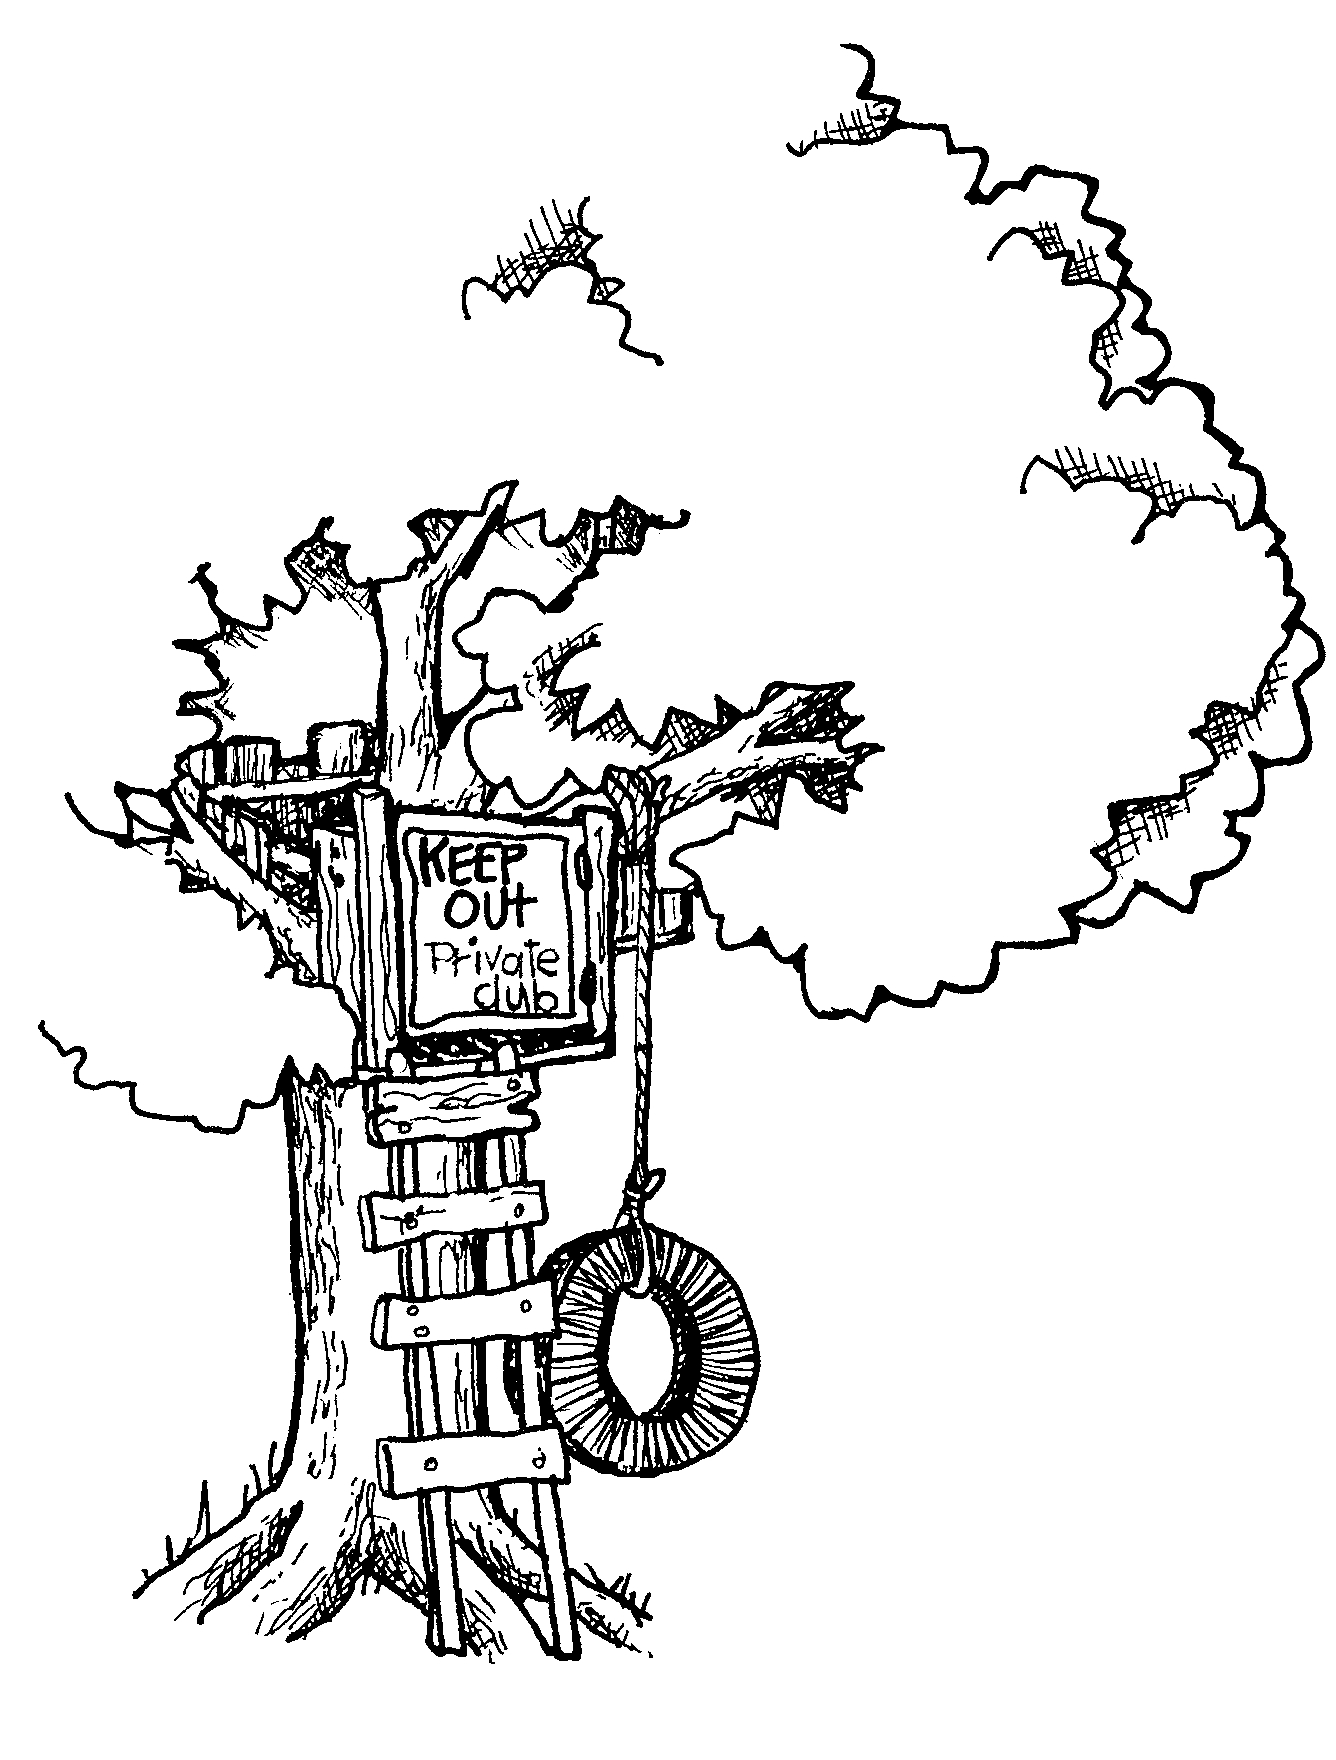 Treehouse Clipart. In retrospect, I wonder if the .